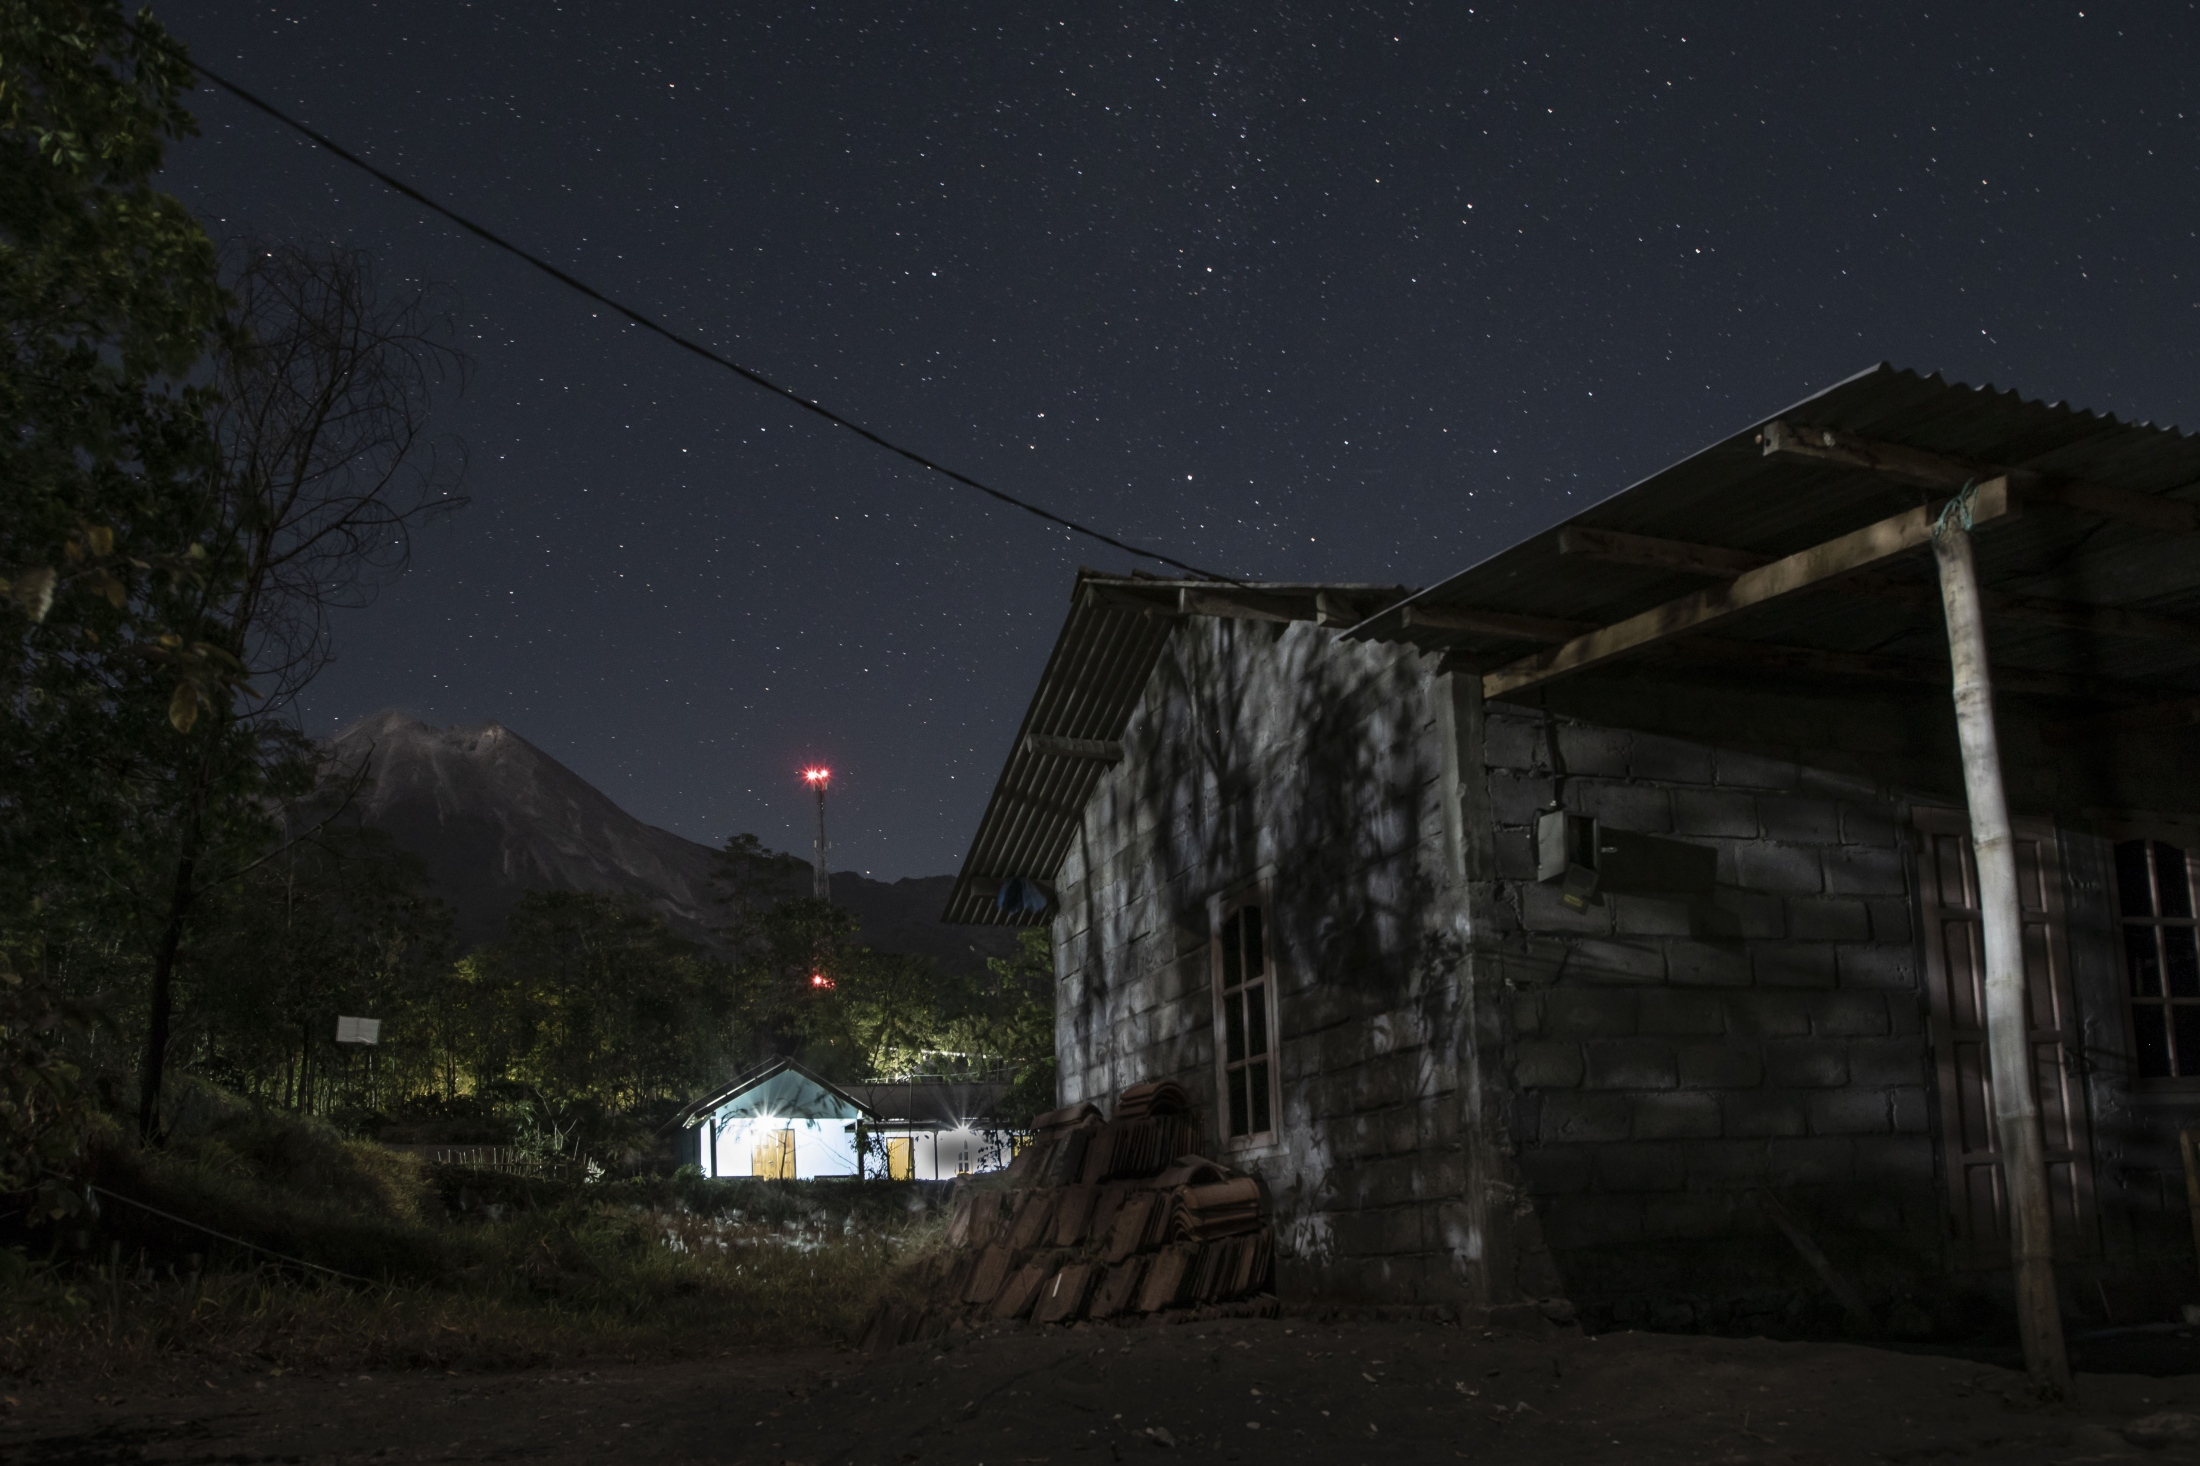 A view of Mount Merapi at night. Rarely can one see the volcano crater and the stars in the sky. Most of the time, Merapi is covered by clouds due to its high elevationof about 9,600 ft. When one can see it like this it seems as if the most active volcano of Indonesia is slowly breathing. Locals therefore think of it as a living creature, one that needs to be respected. To keep the volatile natural phenomena in balance, prayer and spiritualism are key to people living by the mountain.